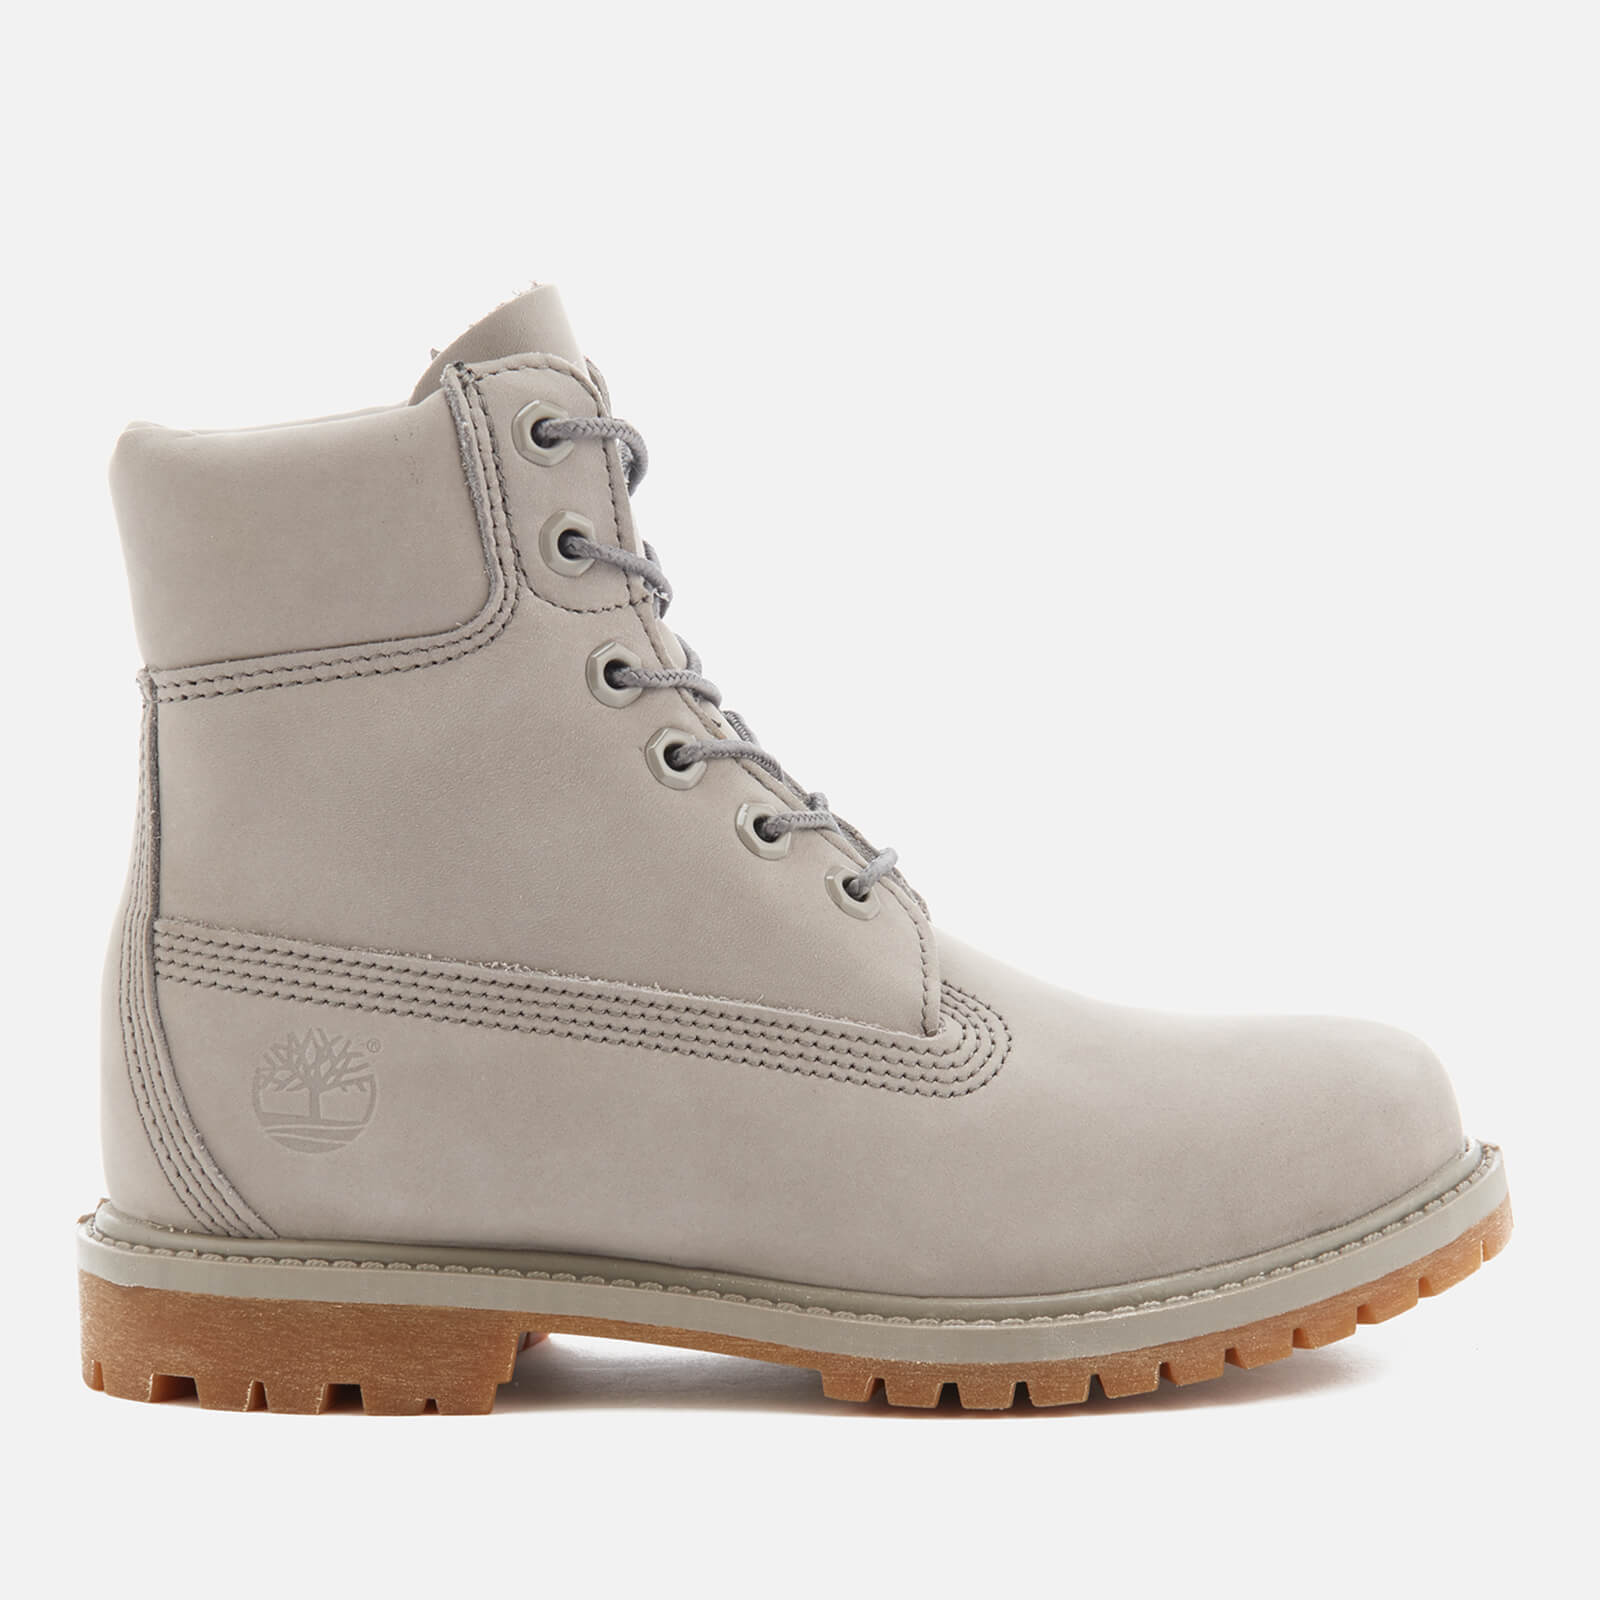 Timberland Women's 6 Inch Premium Leather Boots Steeple Grey Waterbuck Monochromatic